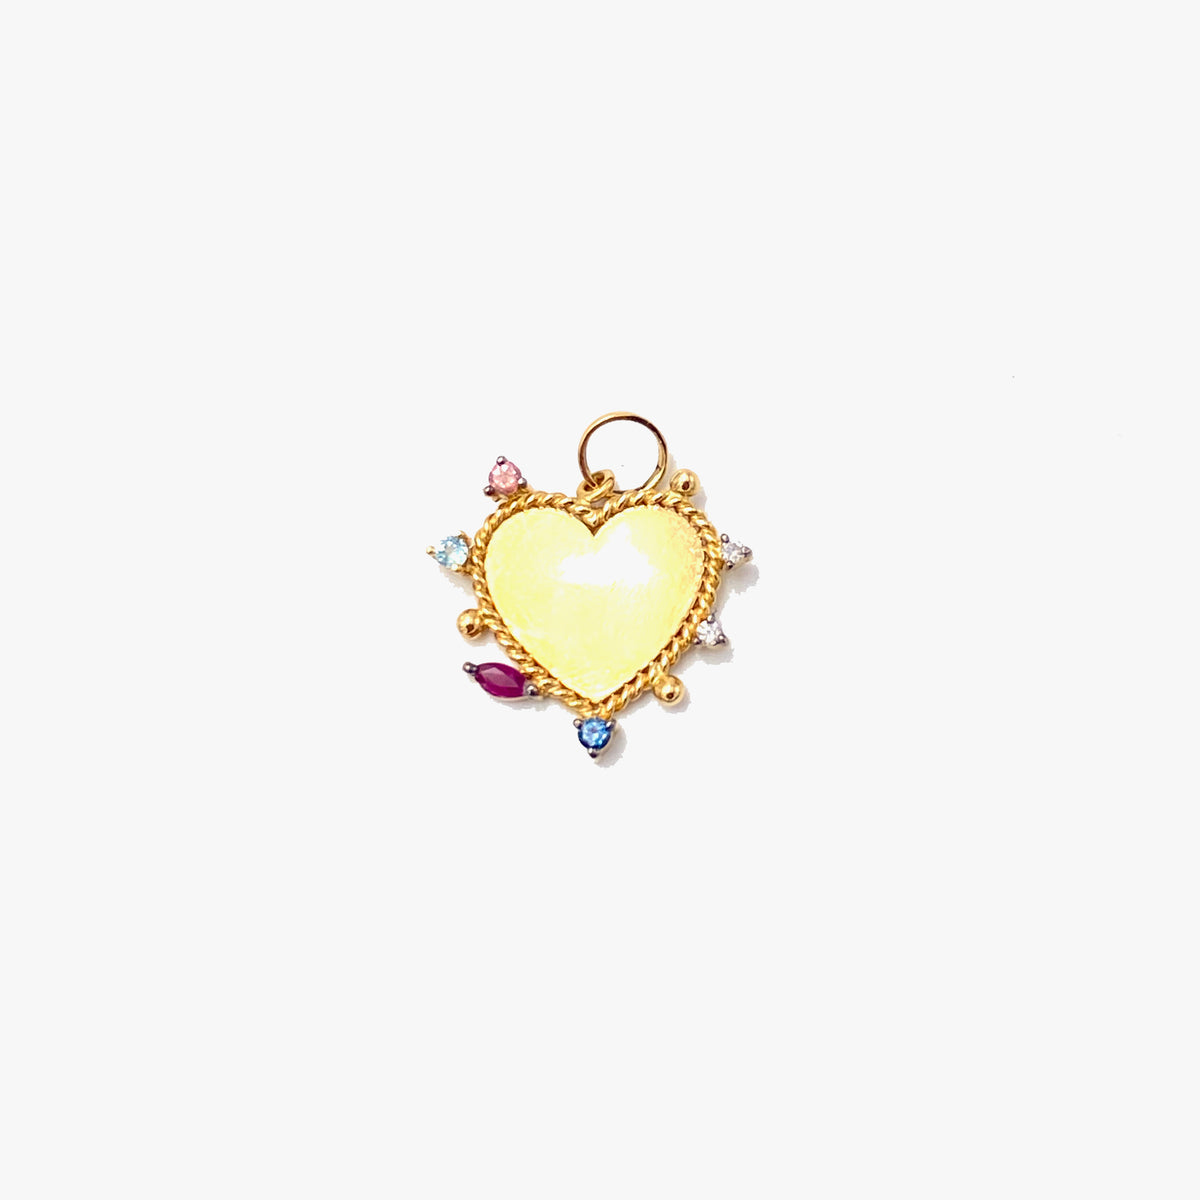 Heart Charm with Multi-Color Gemstones